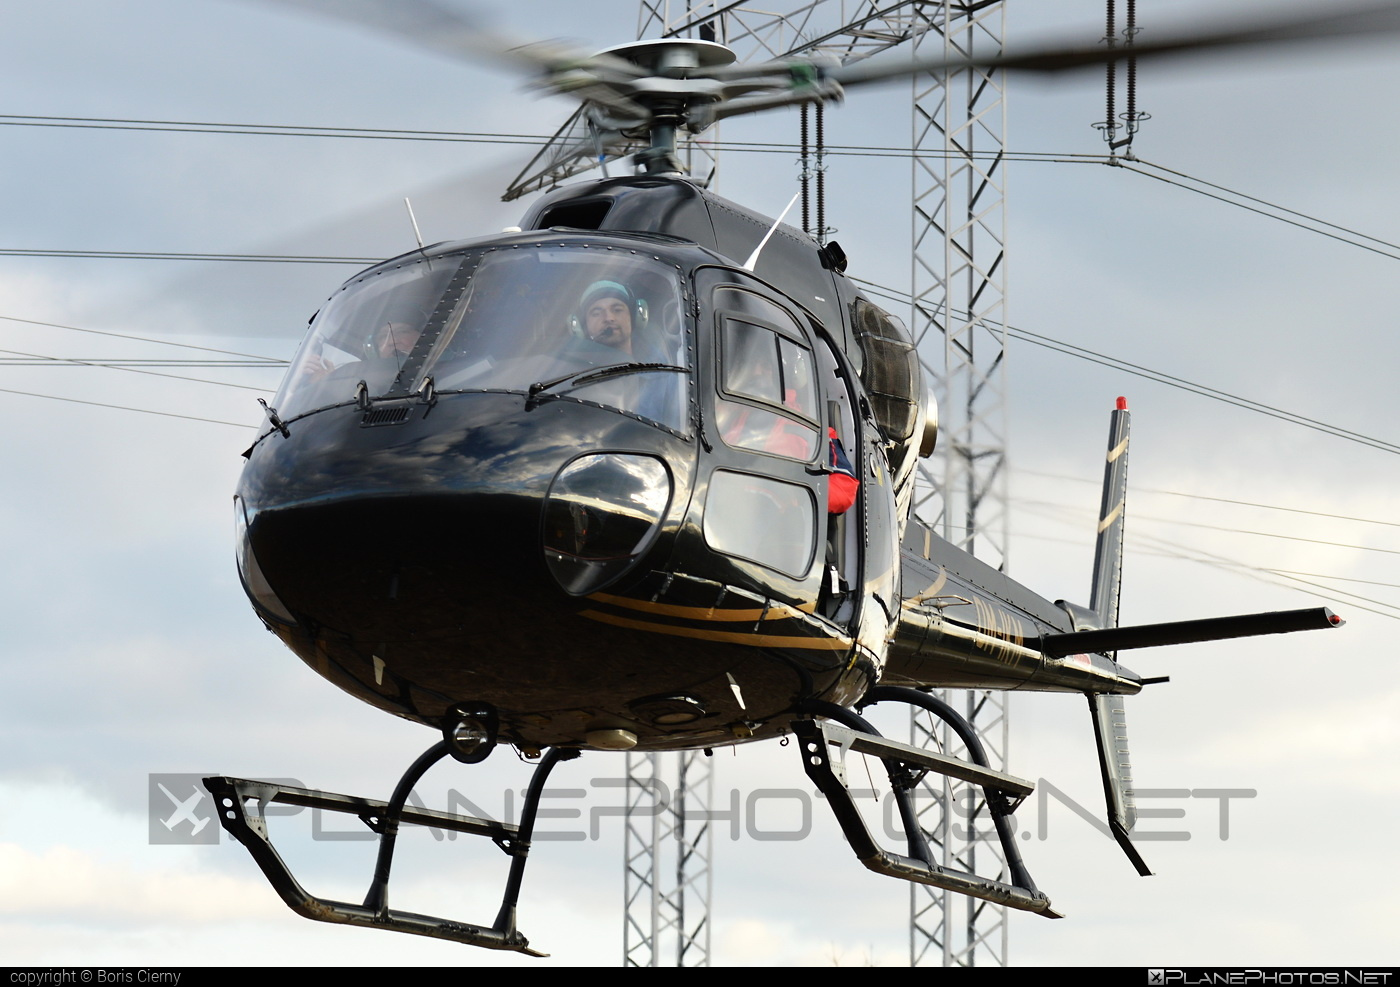 Eurocopter AS355 N Ecureuil 2 - OM-IKM operated by EHC Service #eurocopter